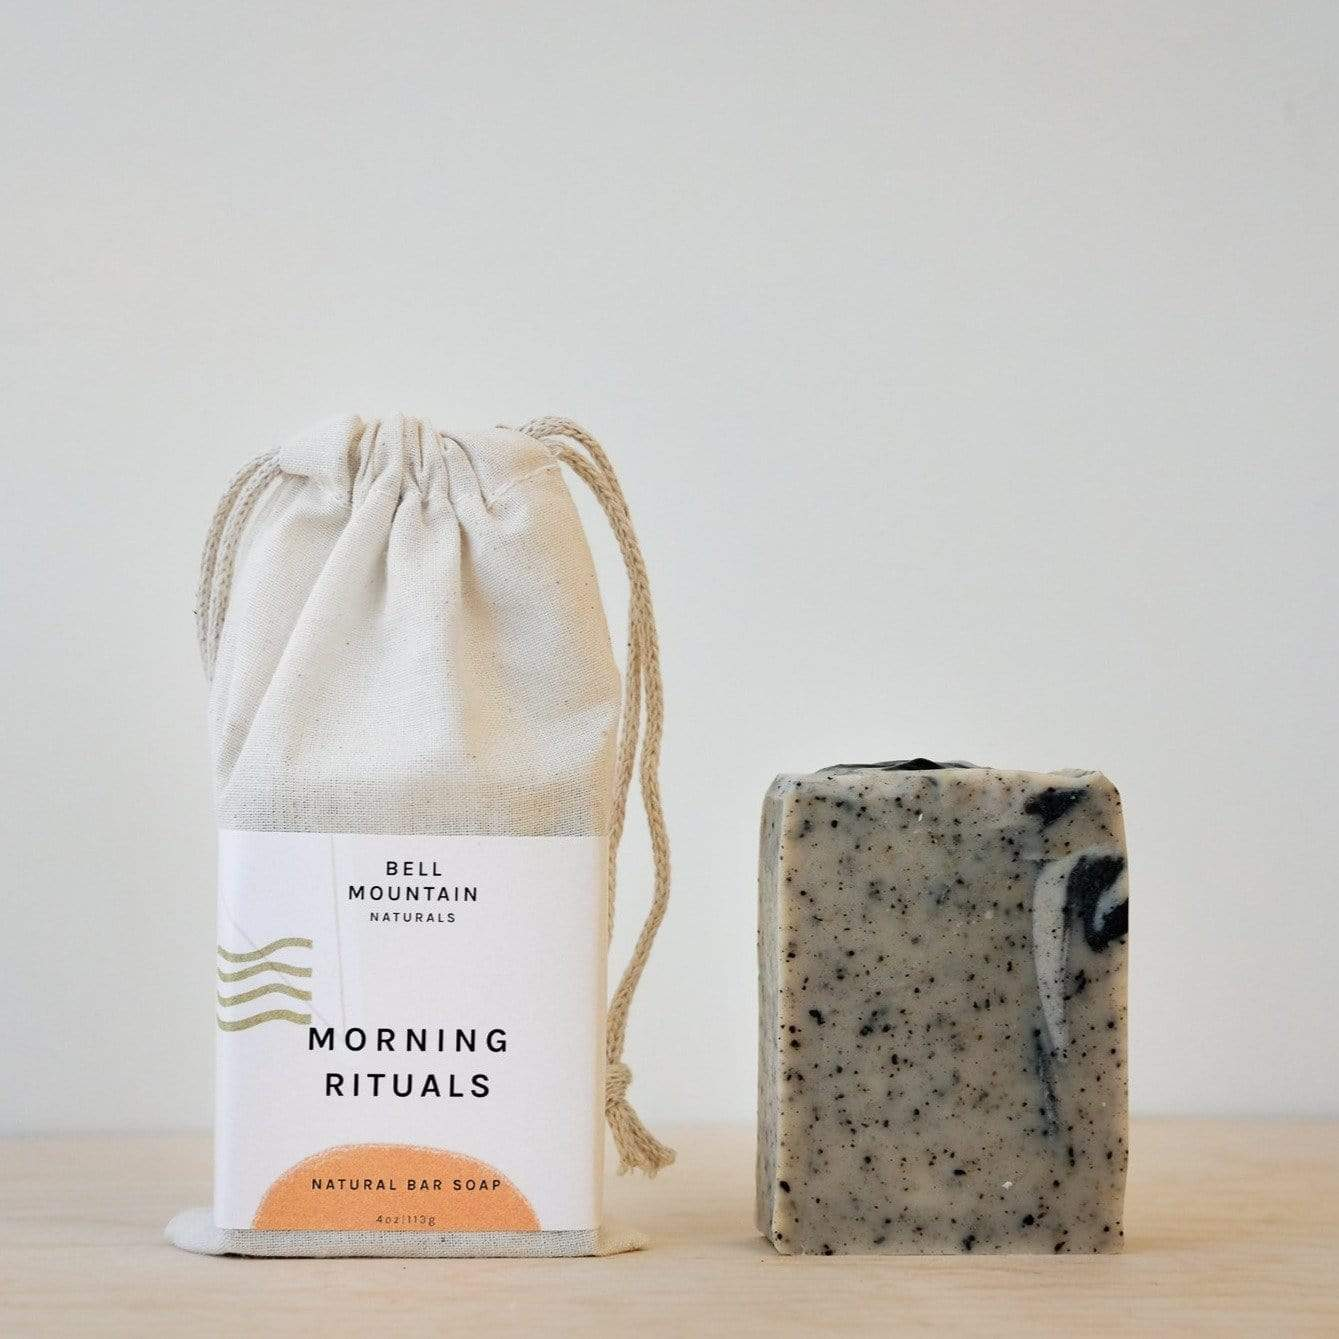 Morning Rituals Bar Soap - Coffee, Chocolate, & Grapefruit - Bell Mountain Naturals -Freehand Market